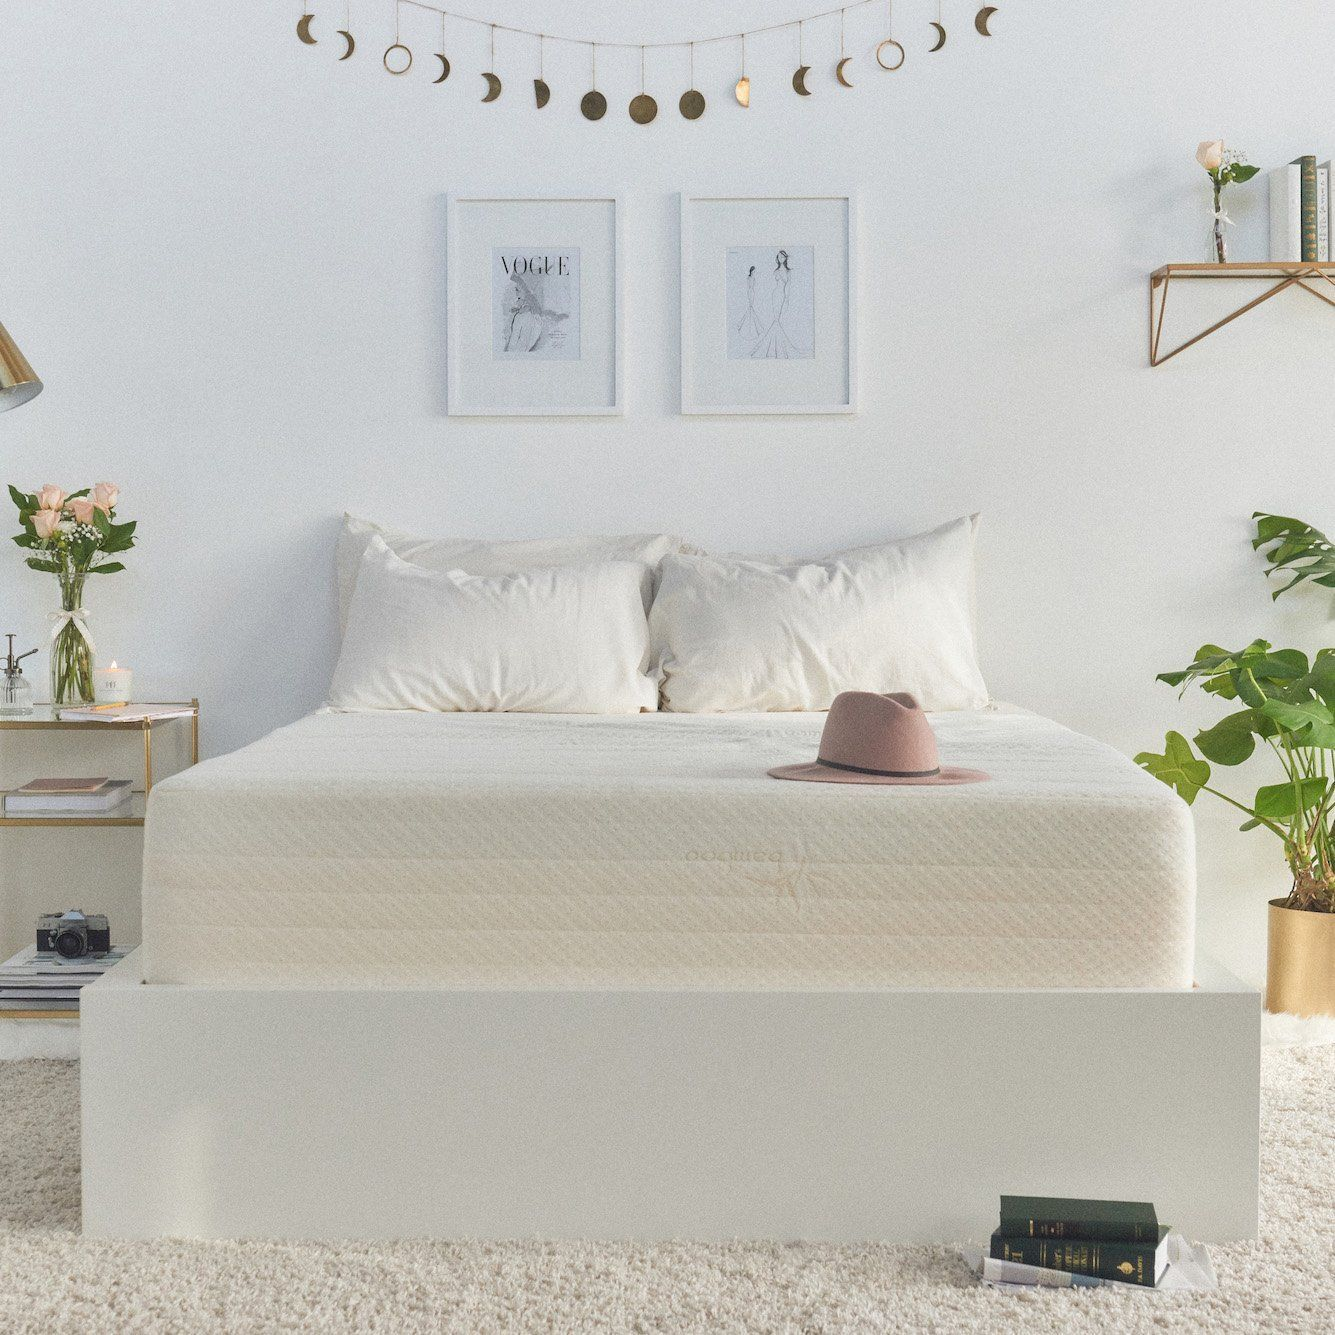 Amazon Com Brentwood Home Cypress Mattress Bamboo Derived Rayon Cover Gel Memory Foam Made In Usa 11 Inch